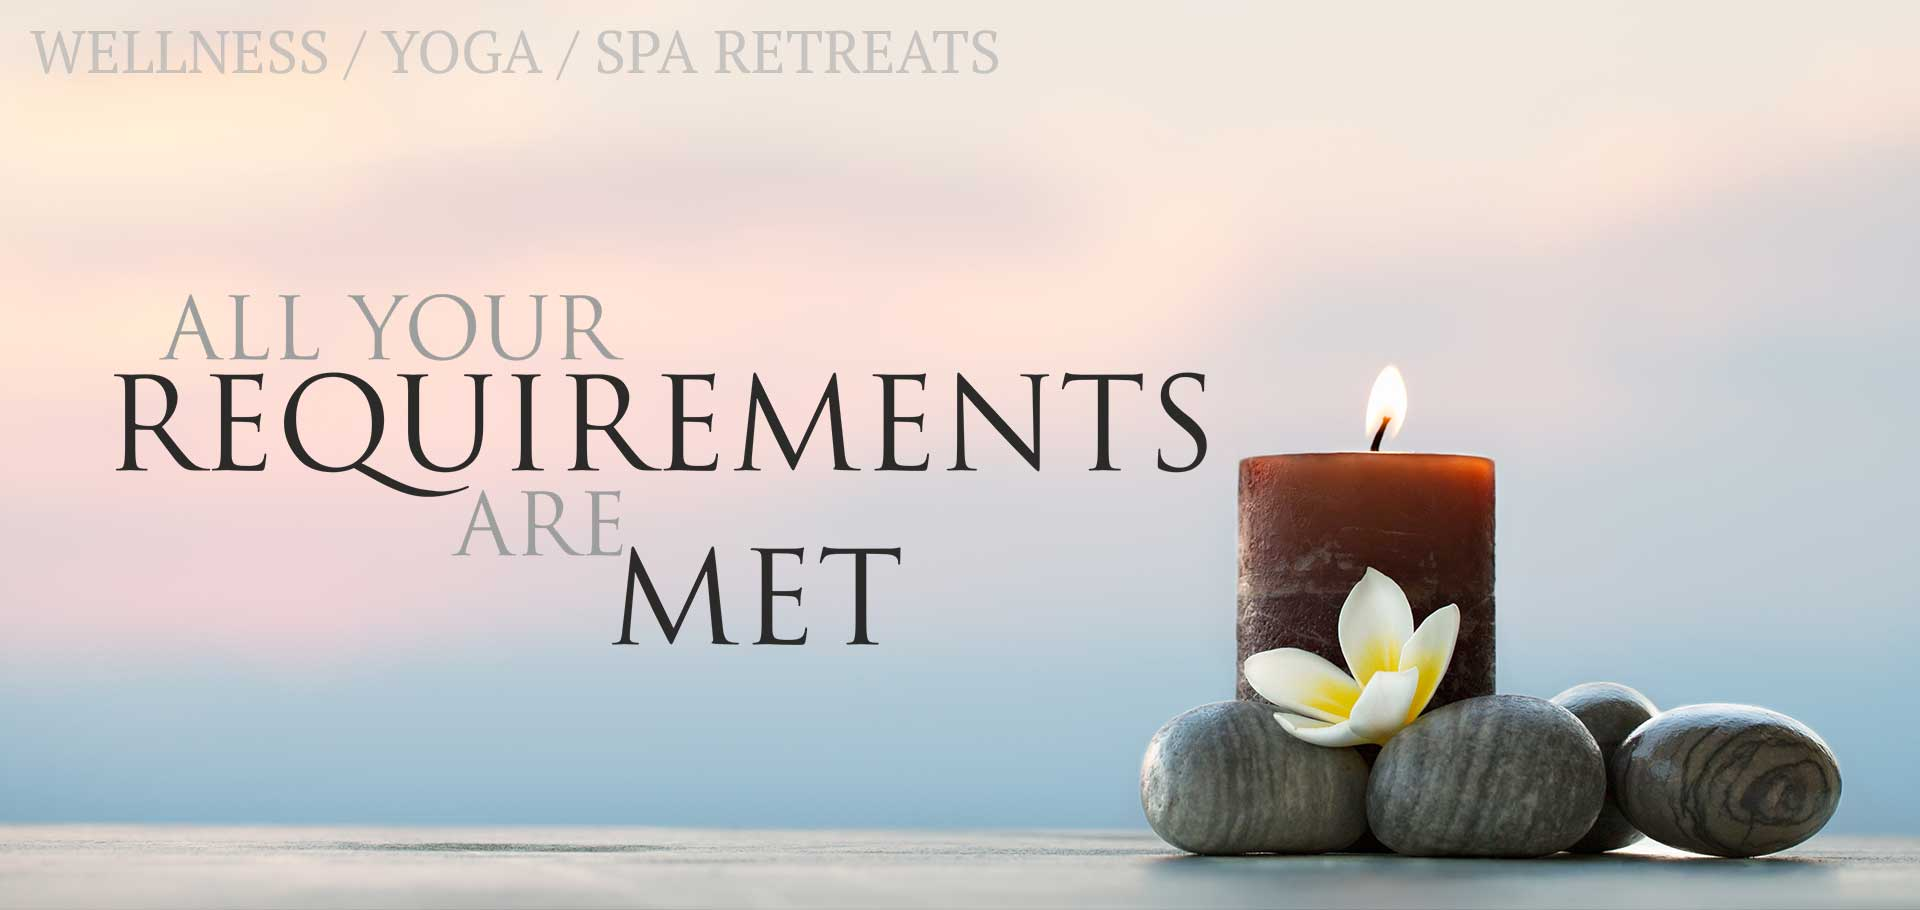 wellness, yoga, spa retreats